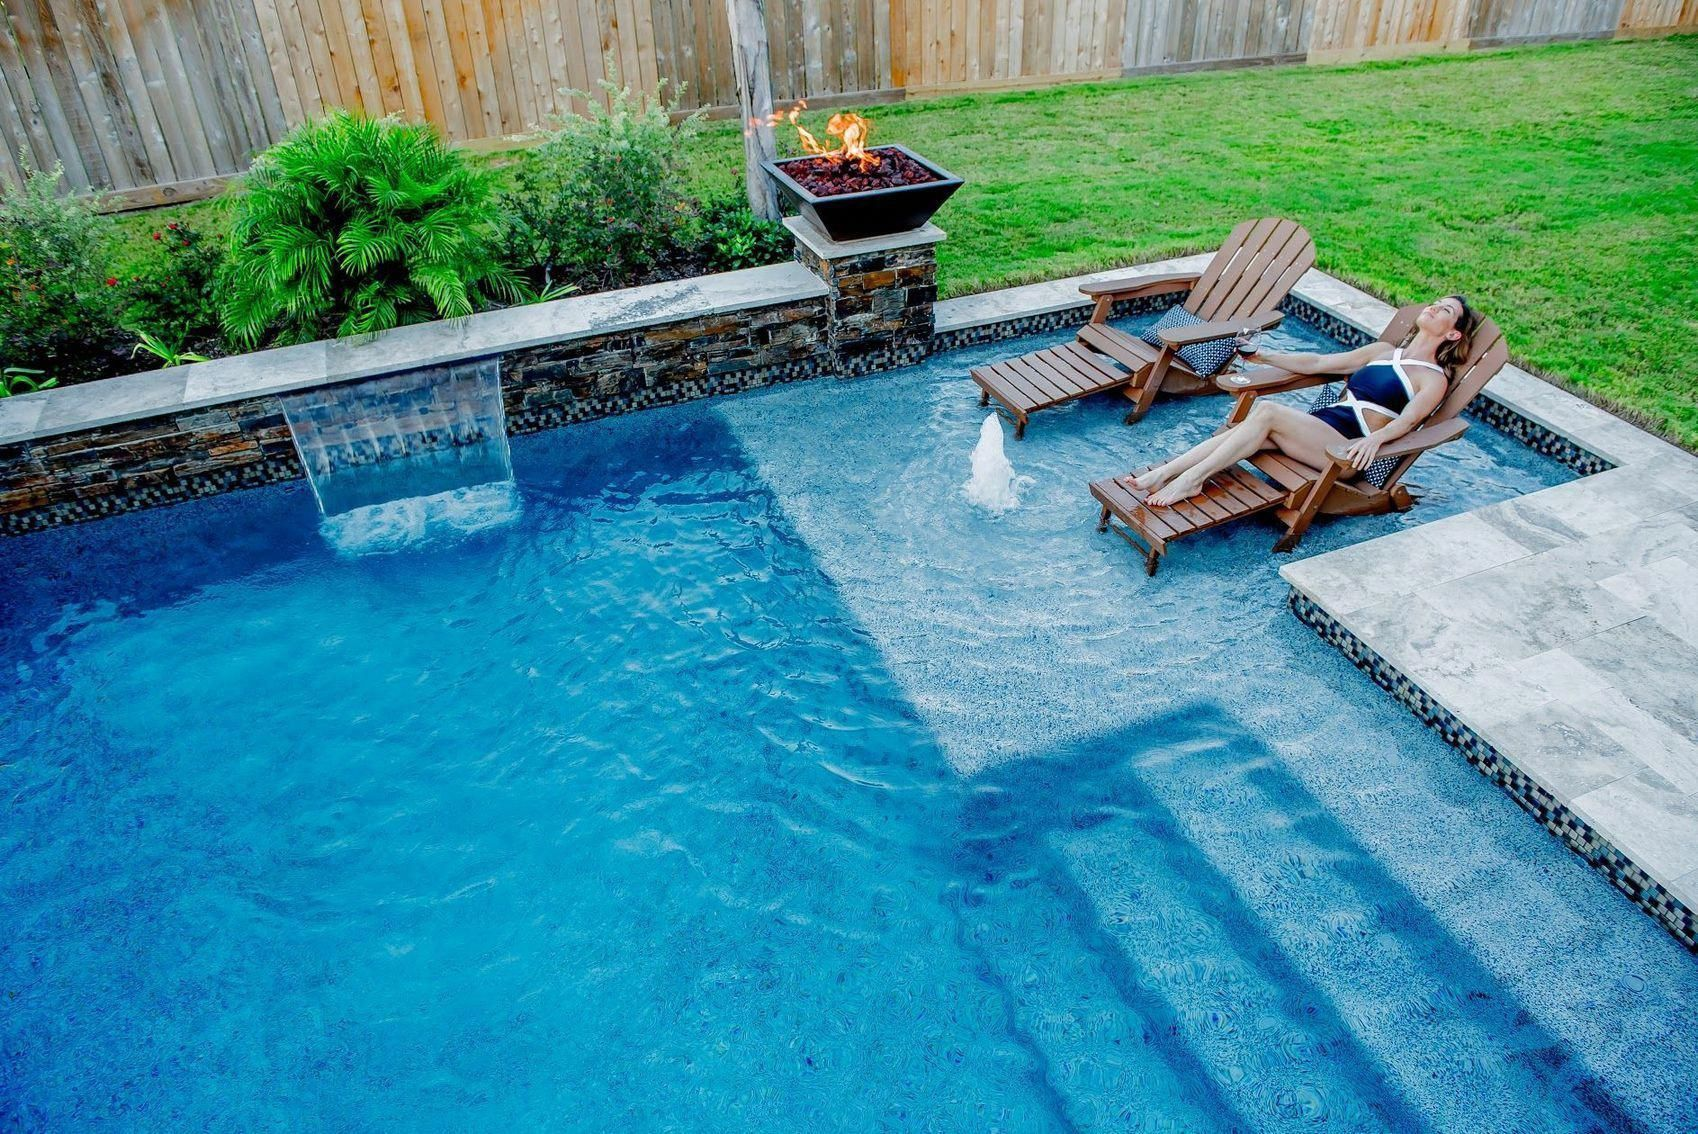 Pool W Tanning Ledge And Fire Pit In 2020 Backyard Pool Landscaping Pools Backyard Inground Inground Pool Designs